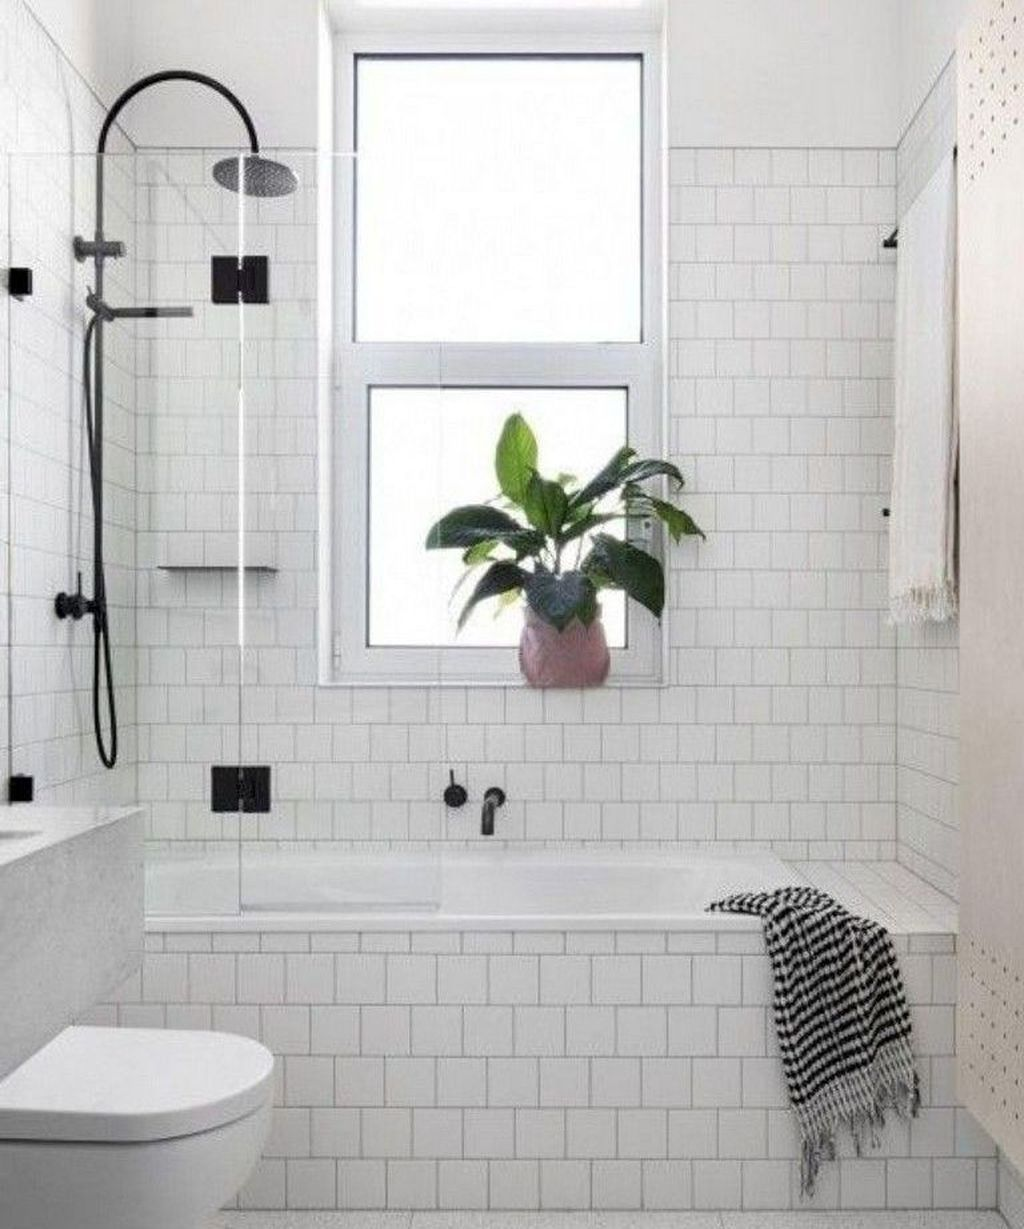 Awesome 38 Luxury Small Bathroom Designs Ideas With Shower More At Https Homyfeed Com 2019 04 14 38 Lu Kleine Badezimmer Kleine Badezimmer Design Badezimmer